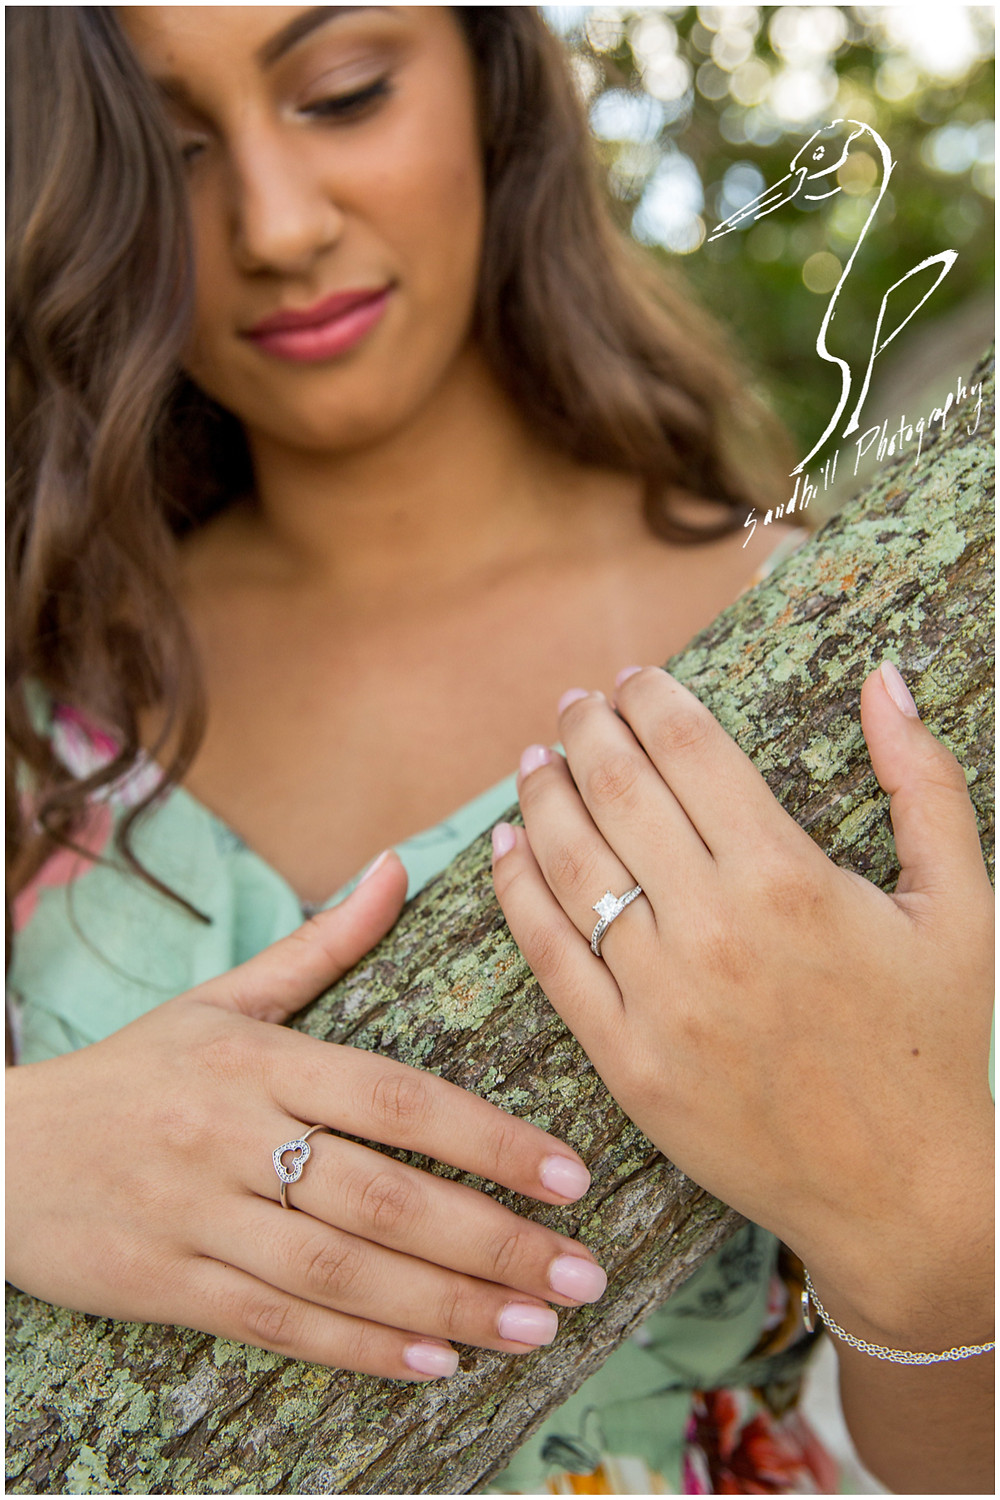 DeSoto National Memorial Photography, an engaged woman wraps her hands around a tree branch, highlighting her engagement ring in the forefront